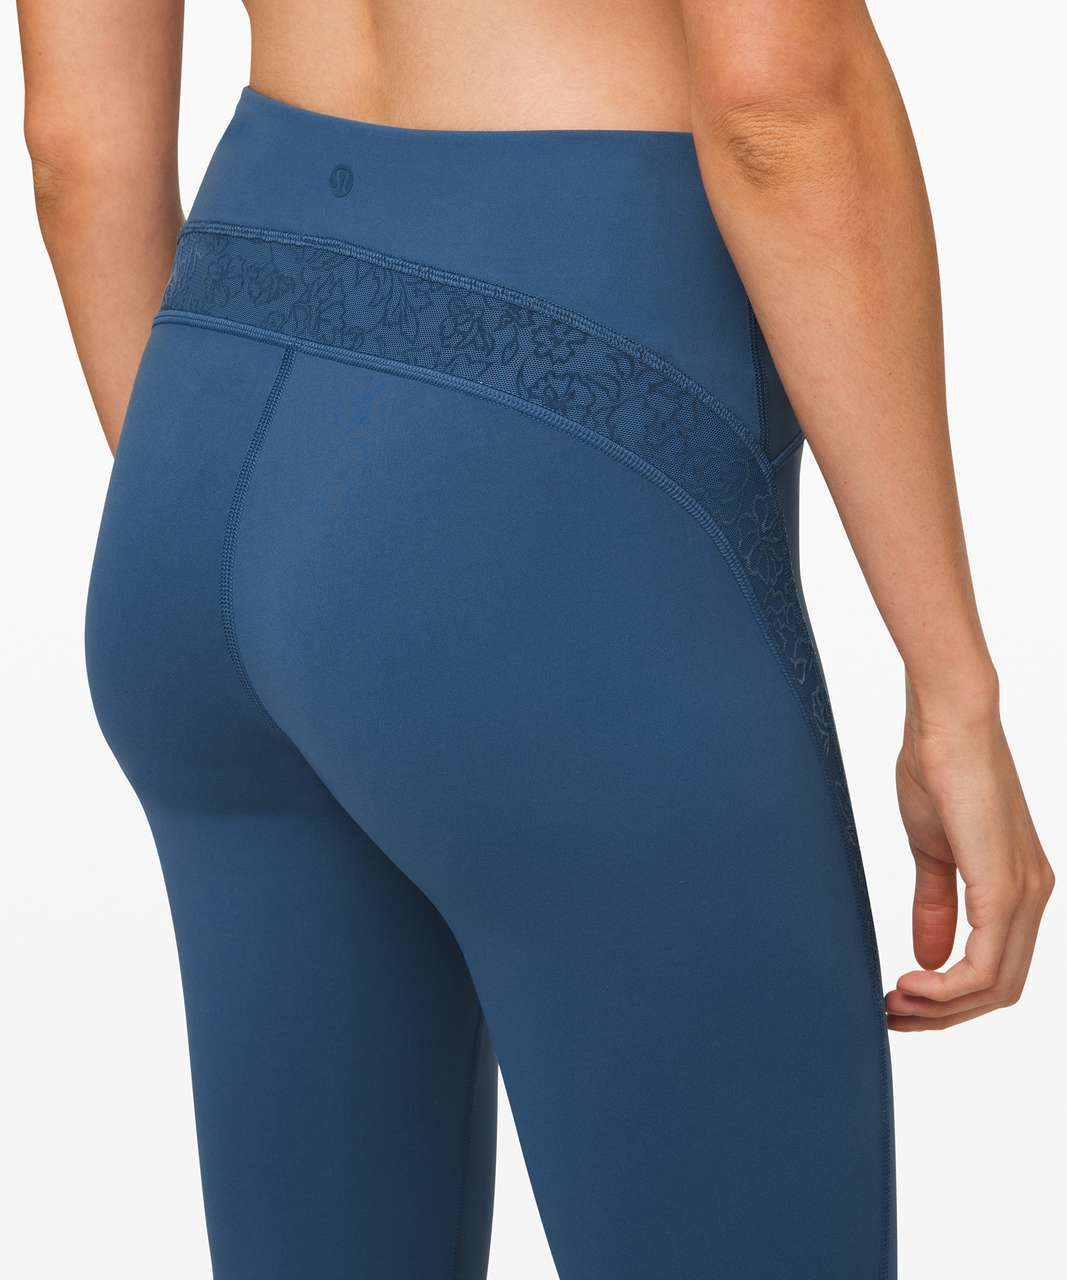 "Lululemon Wunder Under Crop High-Rise 21"" *Flocked Everlux - Code Blue"